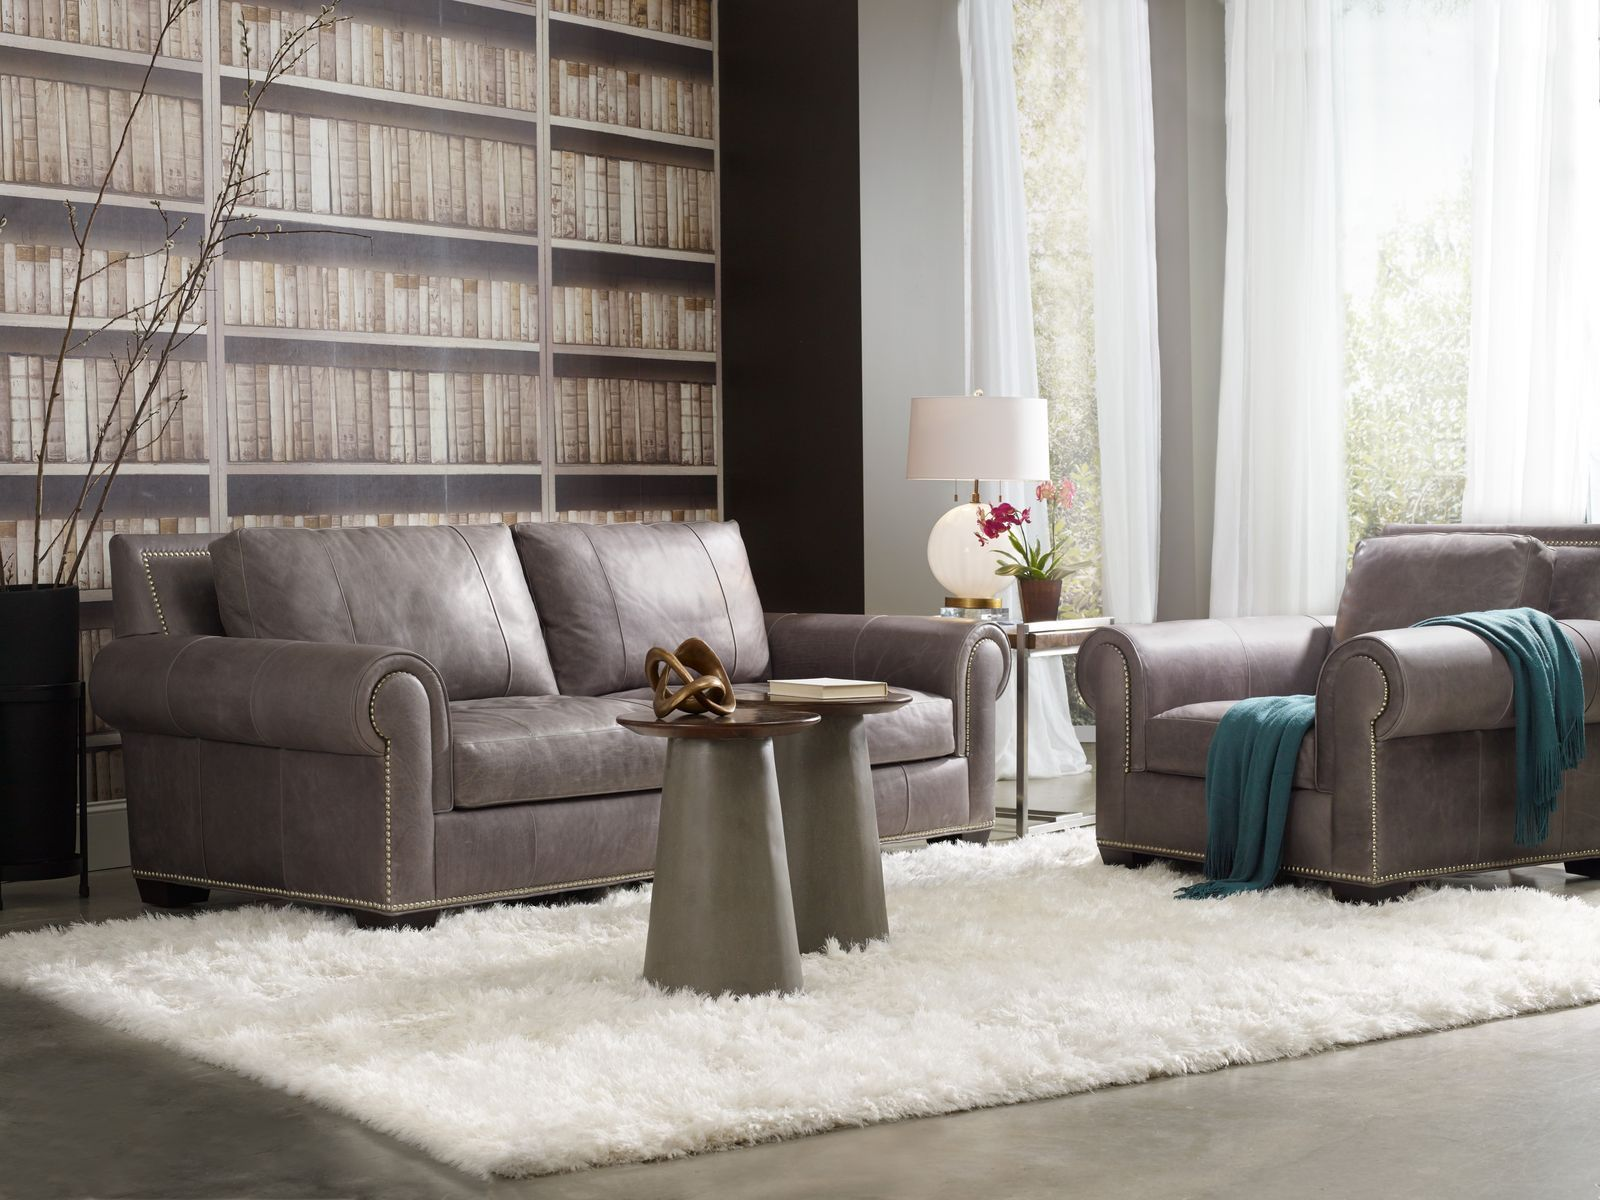 <img src=&quot;livingroom.jpg&quot; alt=&quot;a leather couch in a living room with wide windows.&quot;>